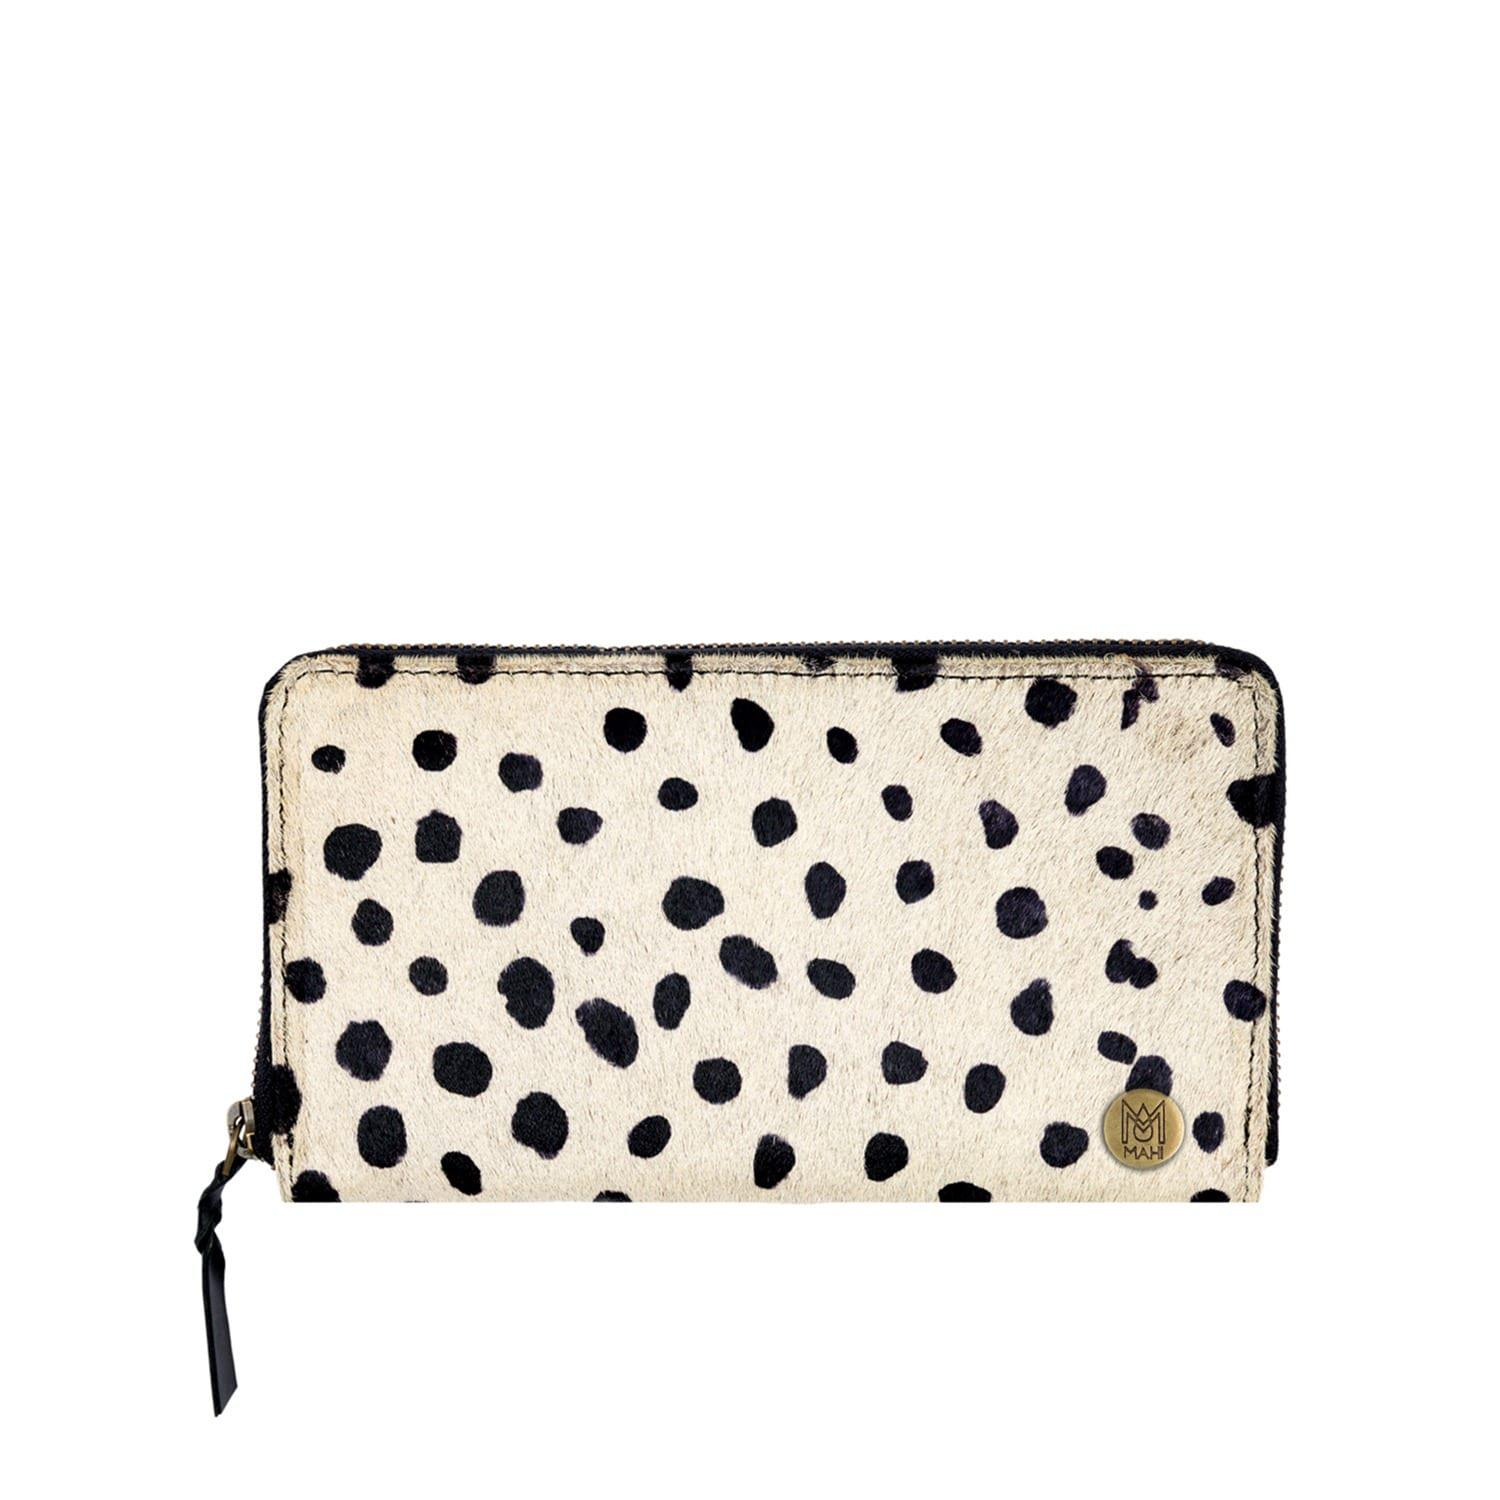 3de8f17c90a MAHI Leather - Multicolor Classic Ladies Purse In Spotty Print Pony Hair  Leather - Lyst